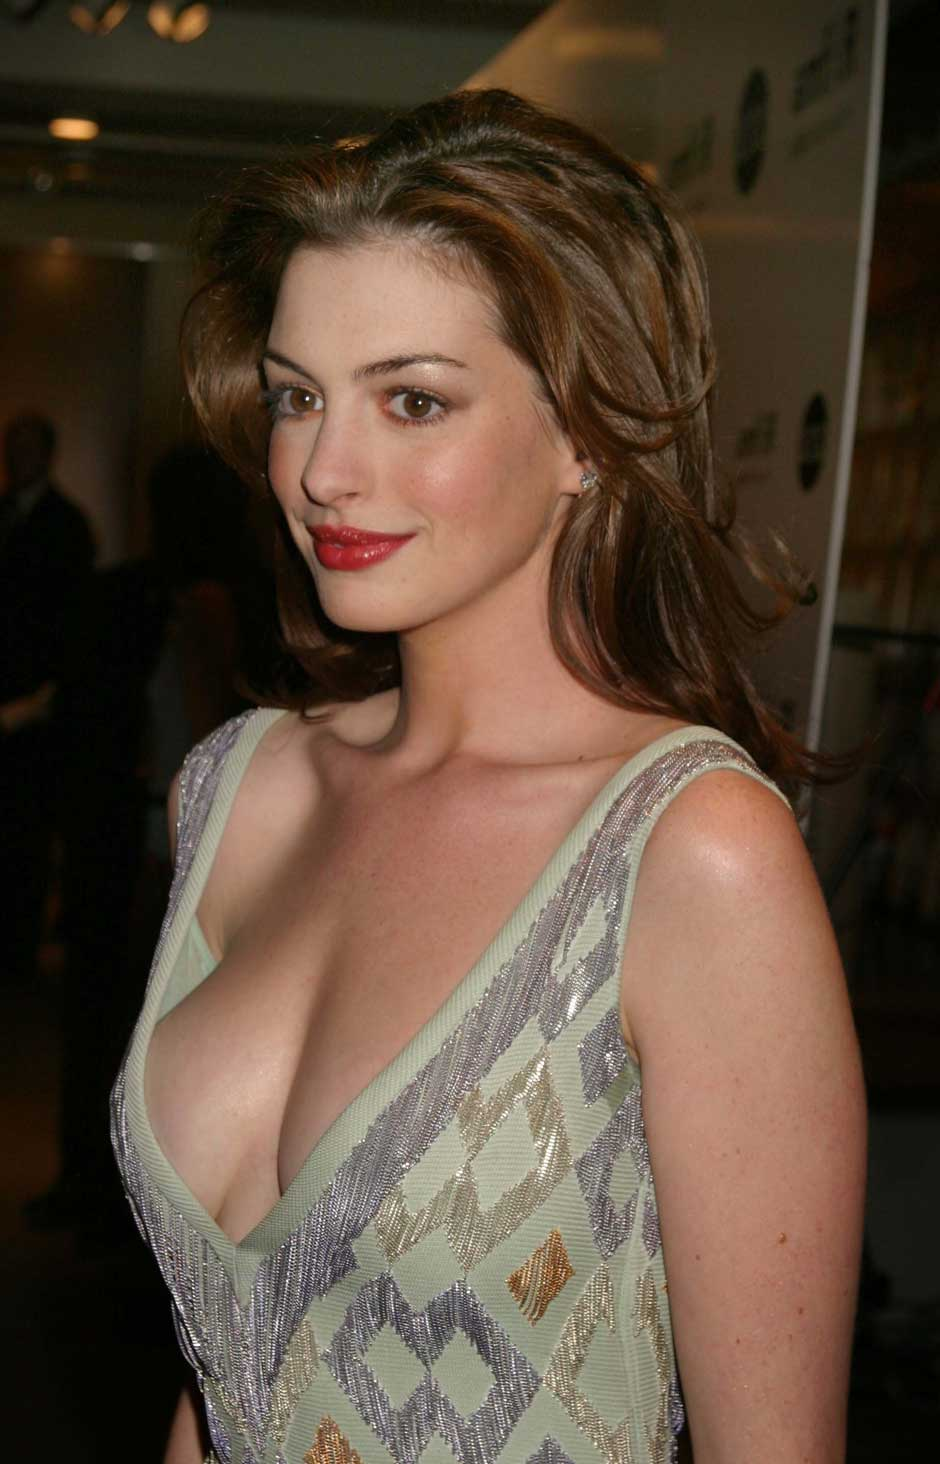 Anne Hathaway Huge Cleavage Show  Hot Actress Sexy Pics-5591